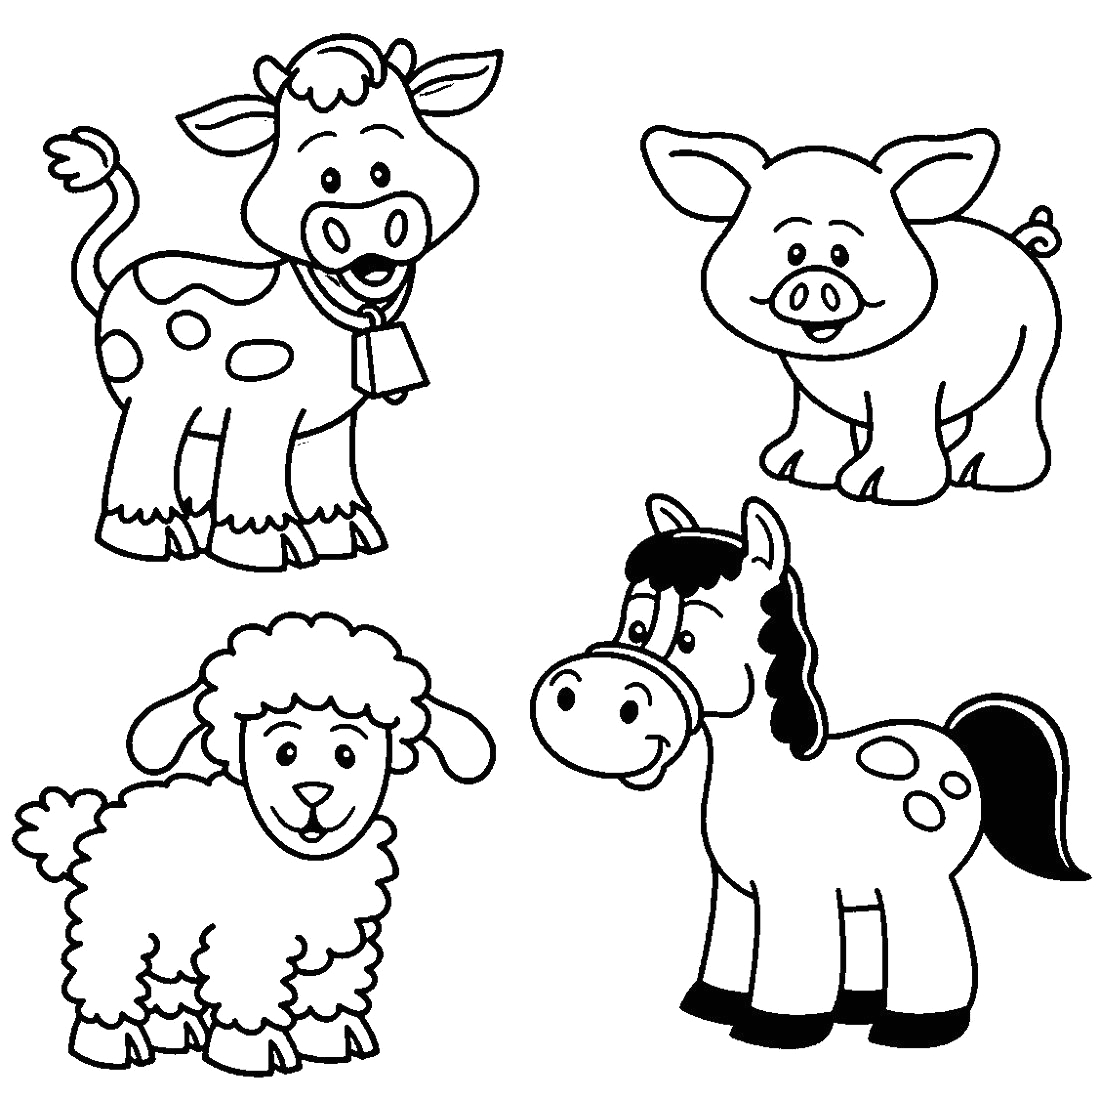 Coloring Pages Of Farm Animals for Preschoolers Printable Farm Animal Coloring for Kindergarten